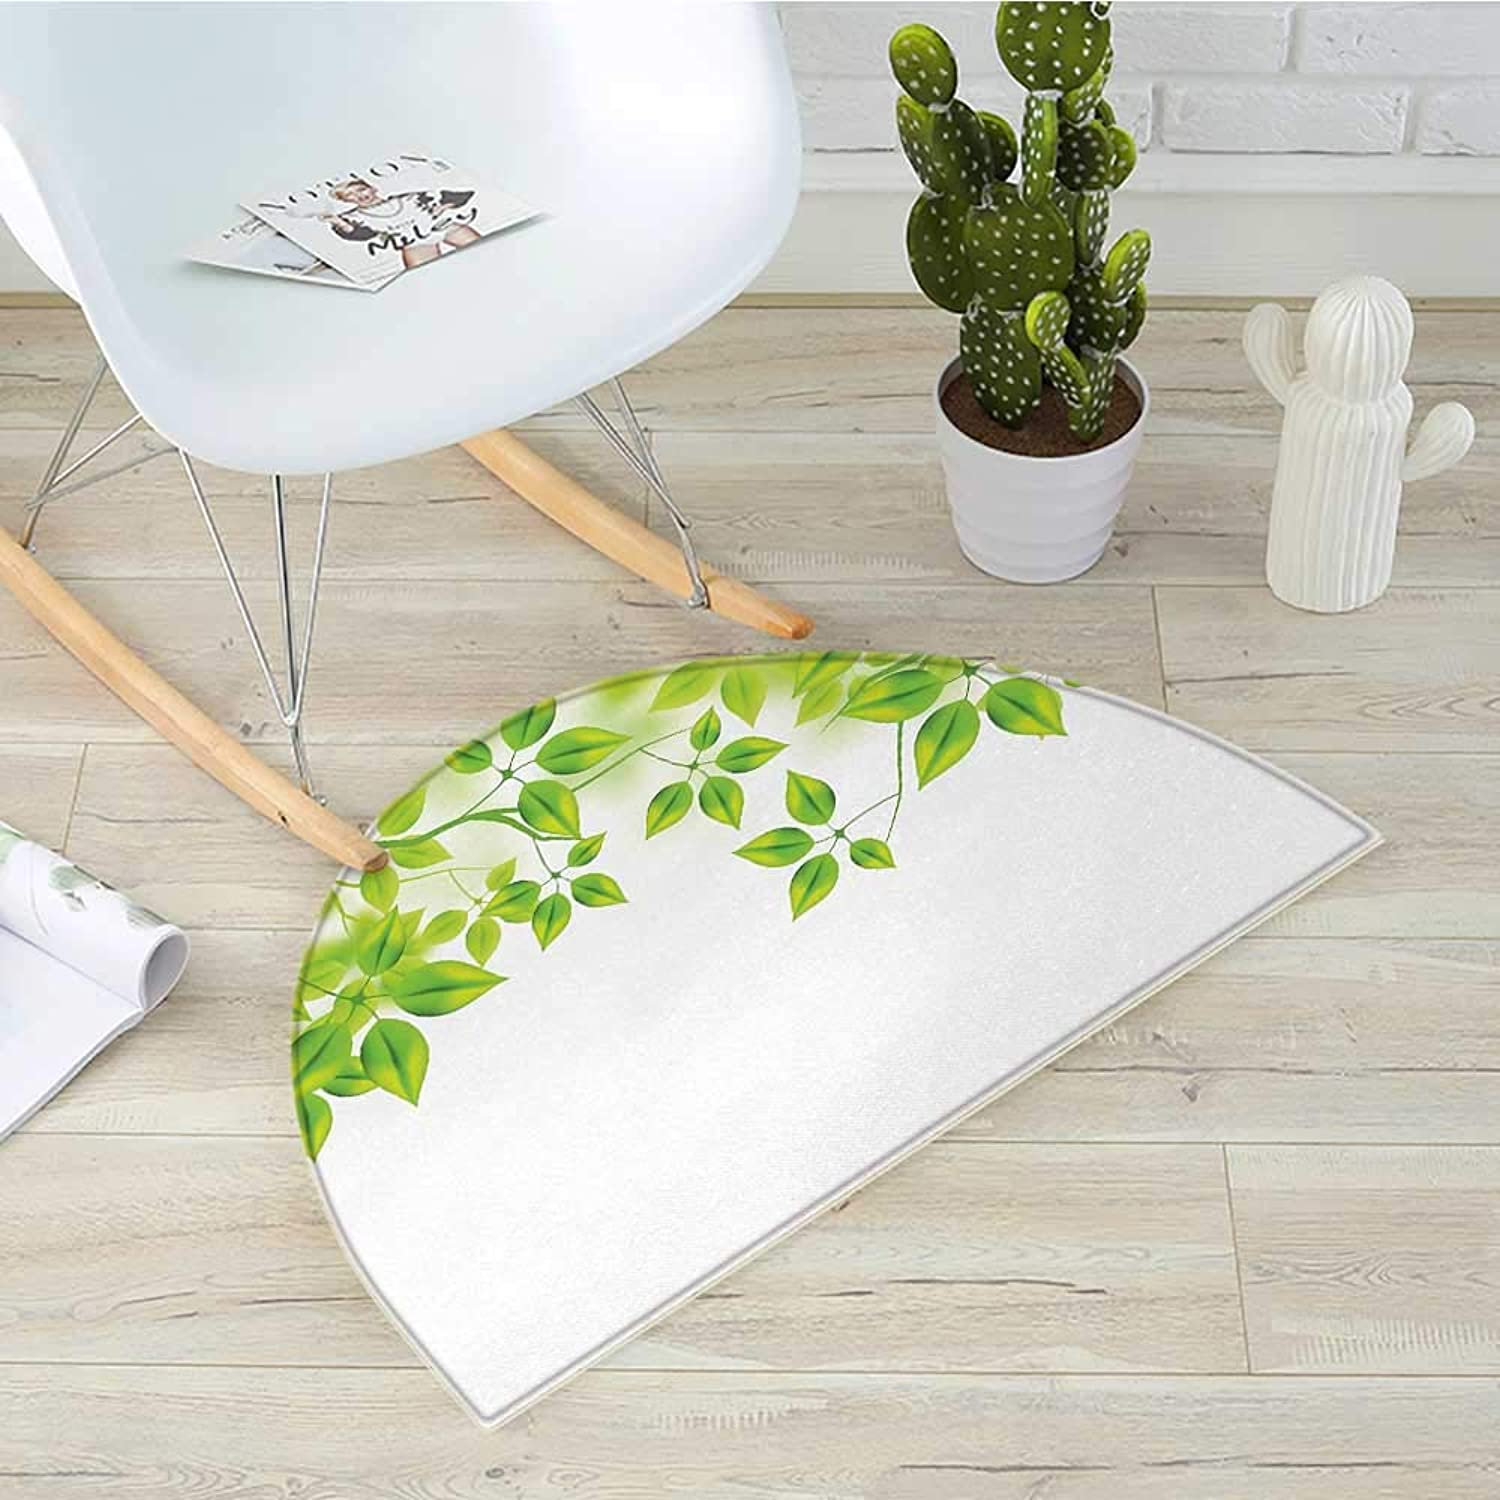 Leaves Semicircular CushionFreshening Background with Vibrant Leaves in Spring Flourishing Open Up Plant Theme Entry Door Mat H 39.3  xD 59  Green White